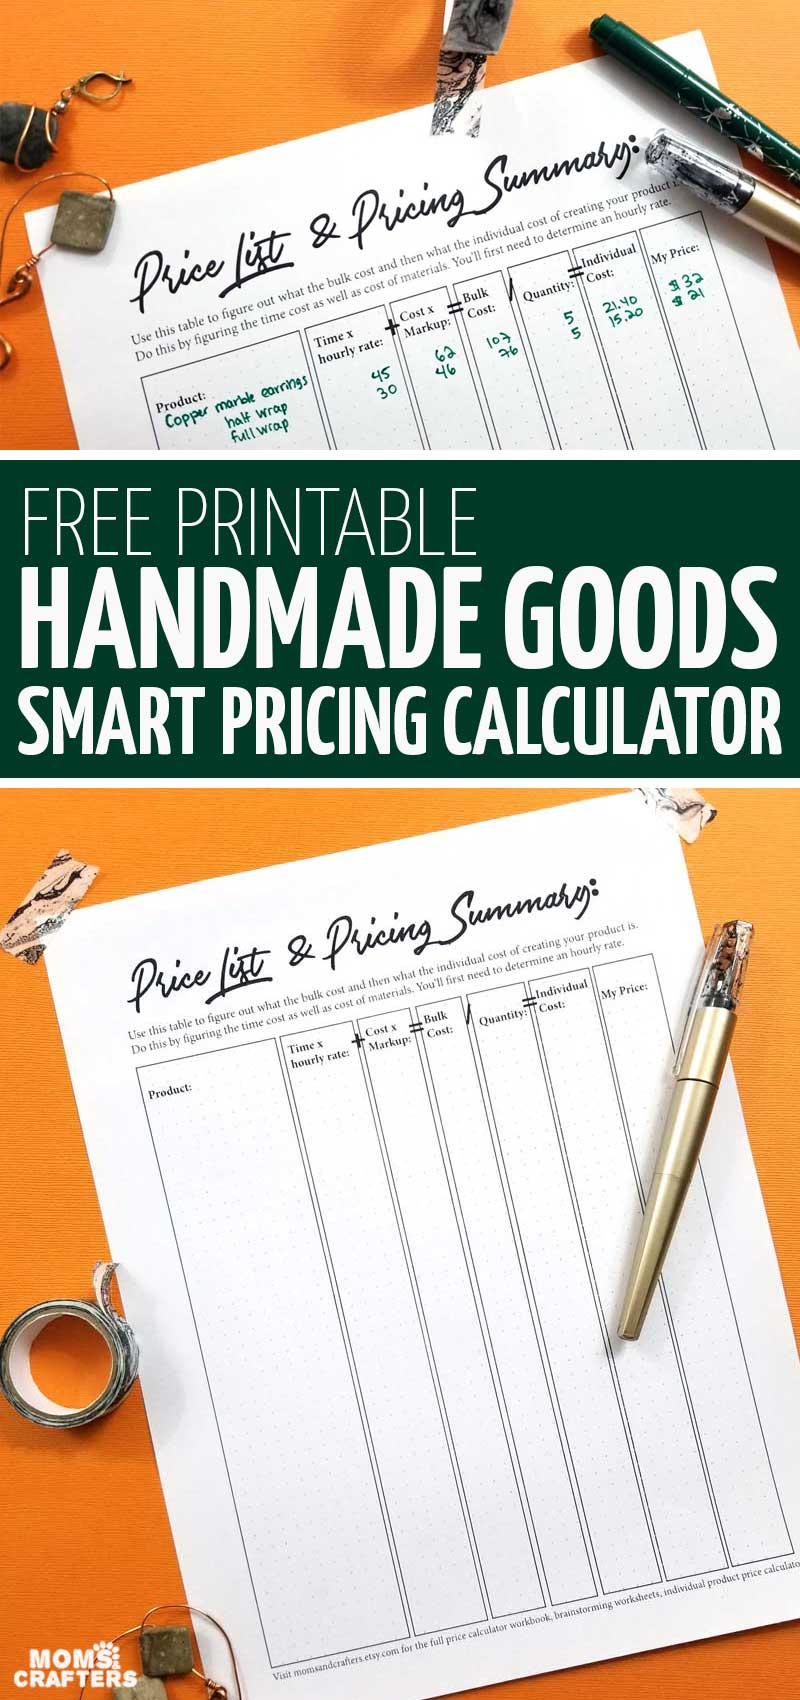 Click for a cool crafting calculator and Etsy shop pricing planner! This handmade goods calculator and selling on Etsy tips is really cool and the best part: it's a free printable!